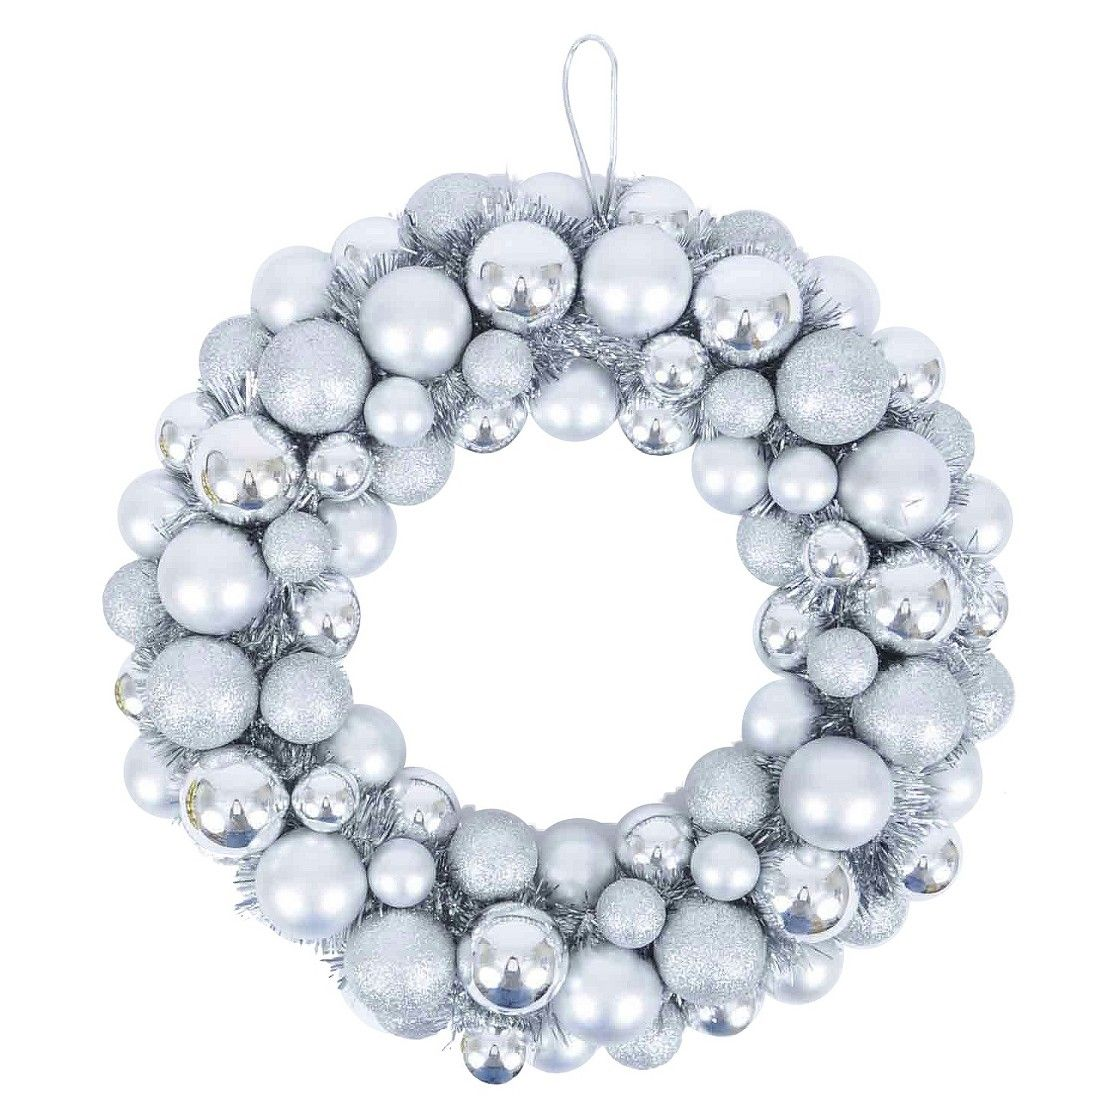 """16"""" Shatterproof Ornament Wreath use tinsel to cover"""